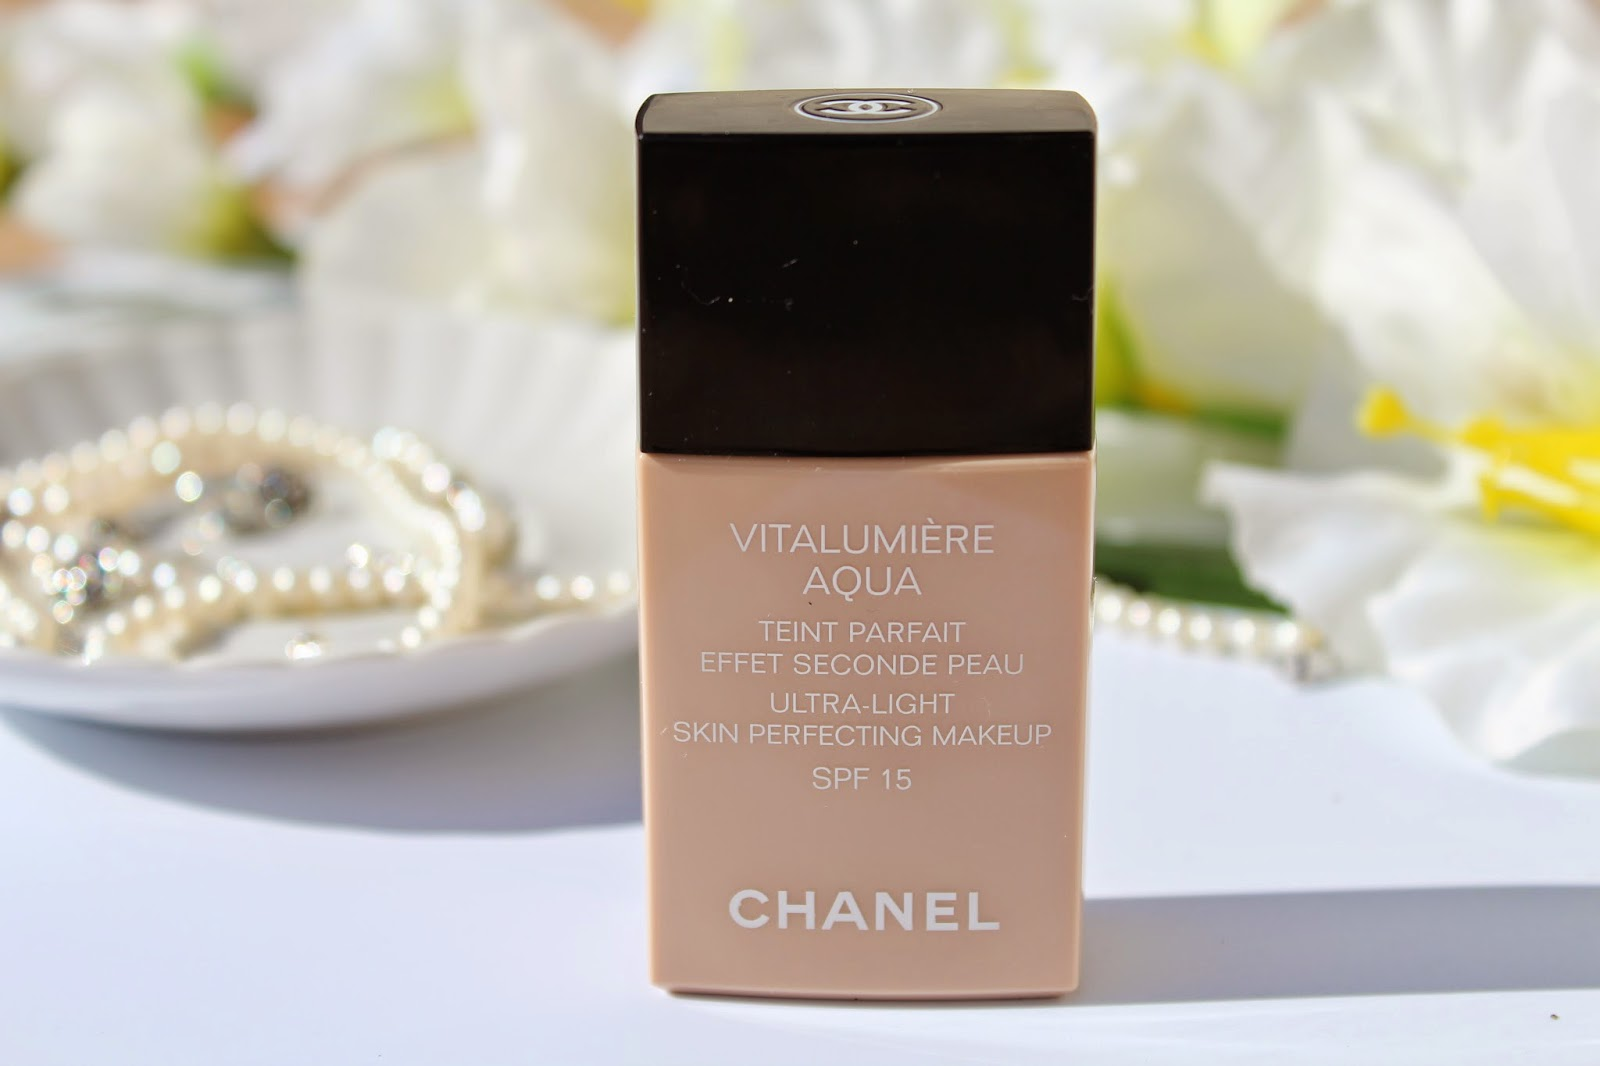 Chanel Vitalumiere Aqua :Review